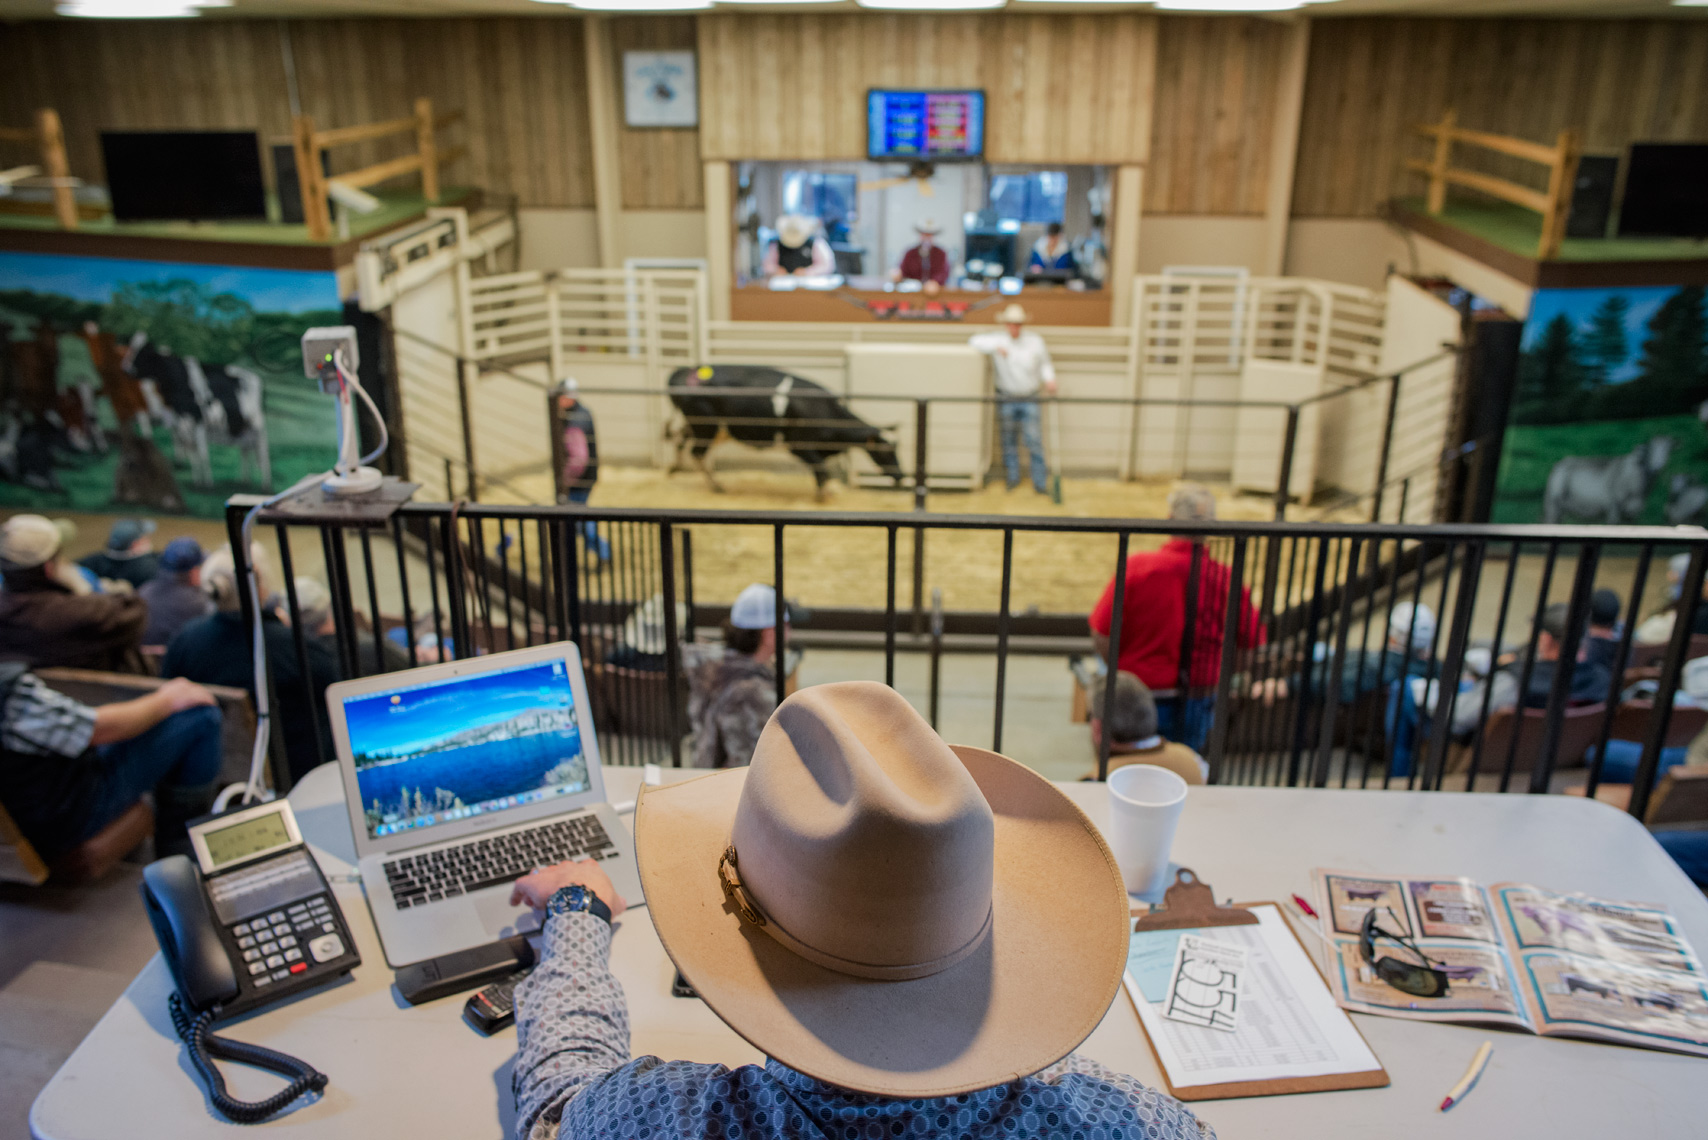 Cowboy at a cattle auction